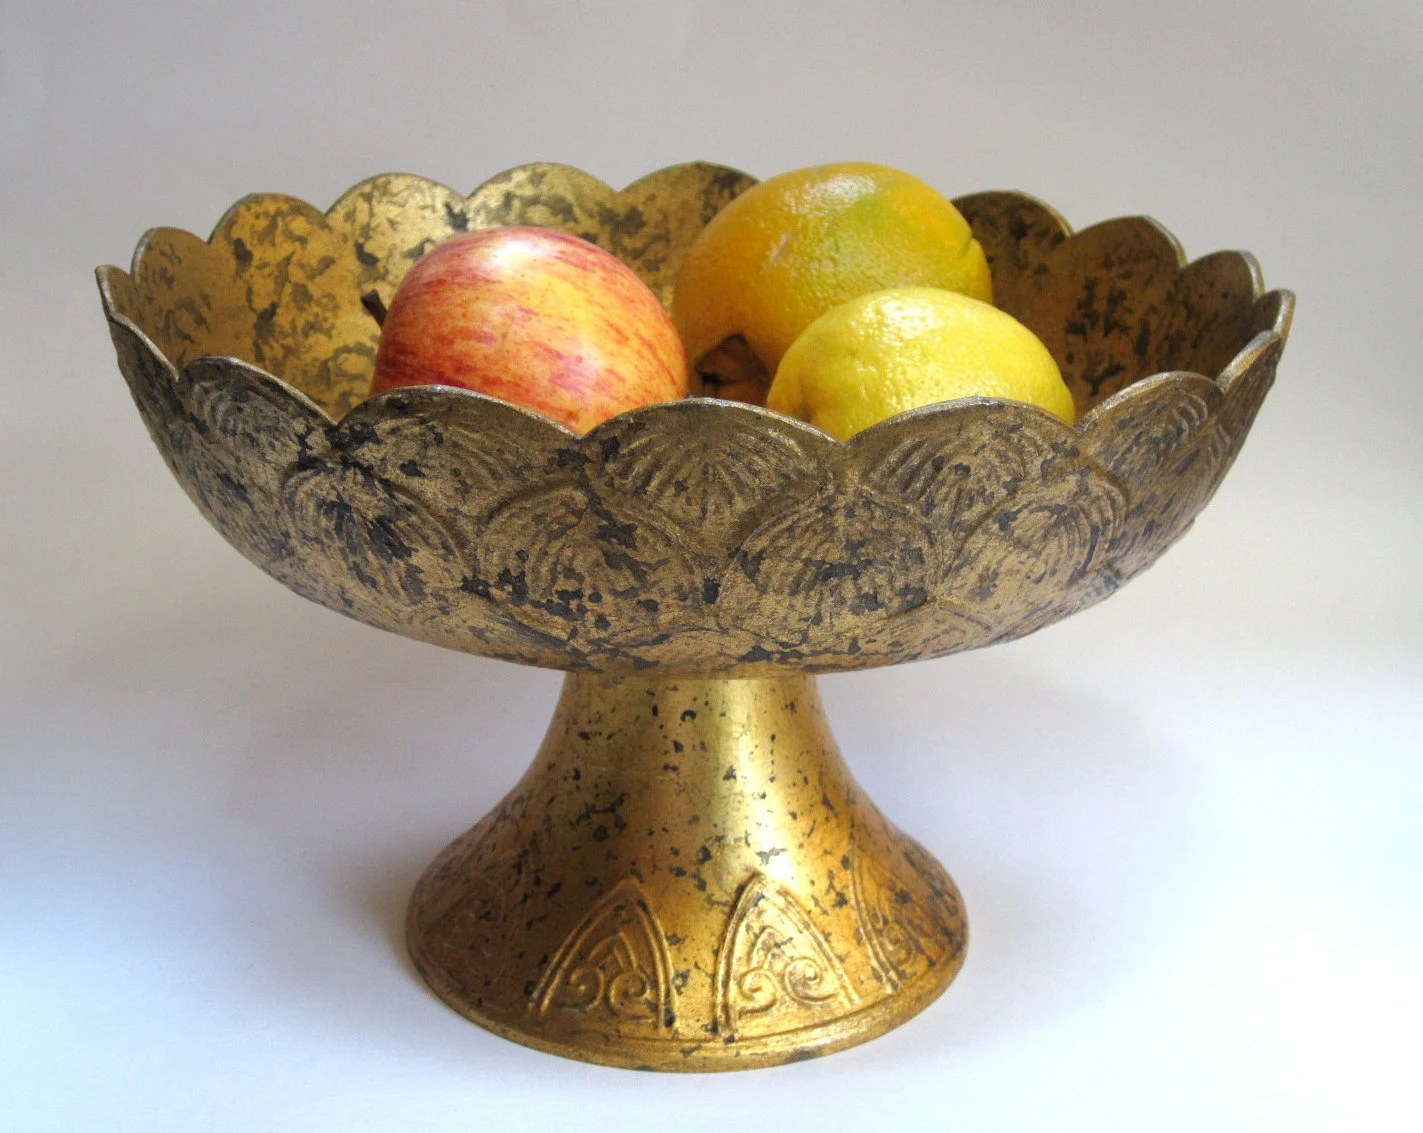 Vintage metal footed bowl - gold with scalloped edges and raised pattern detail - RedAshRedux